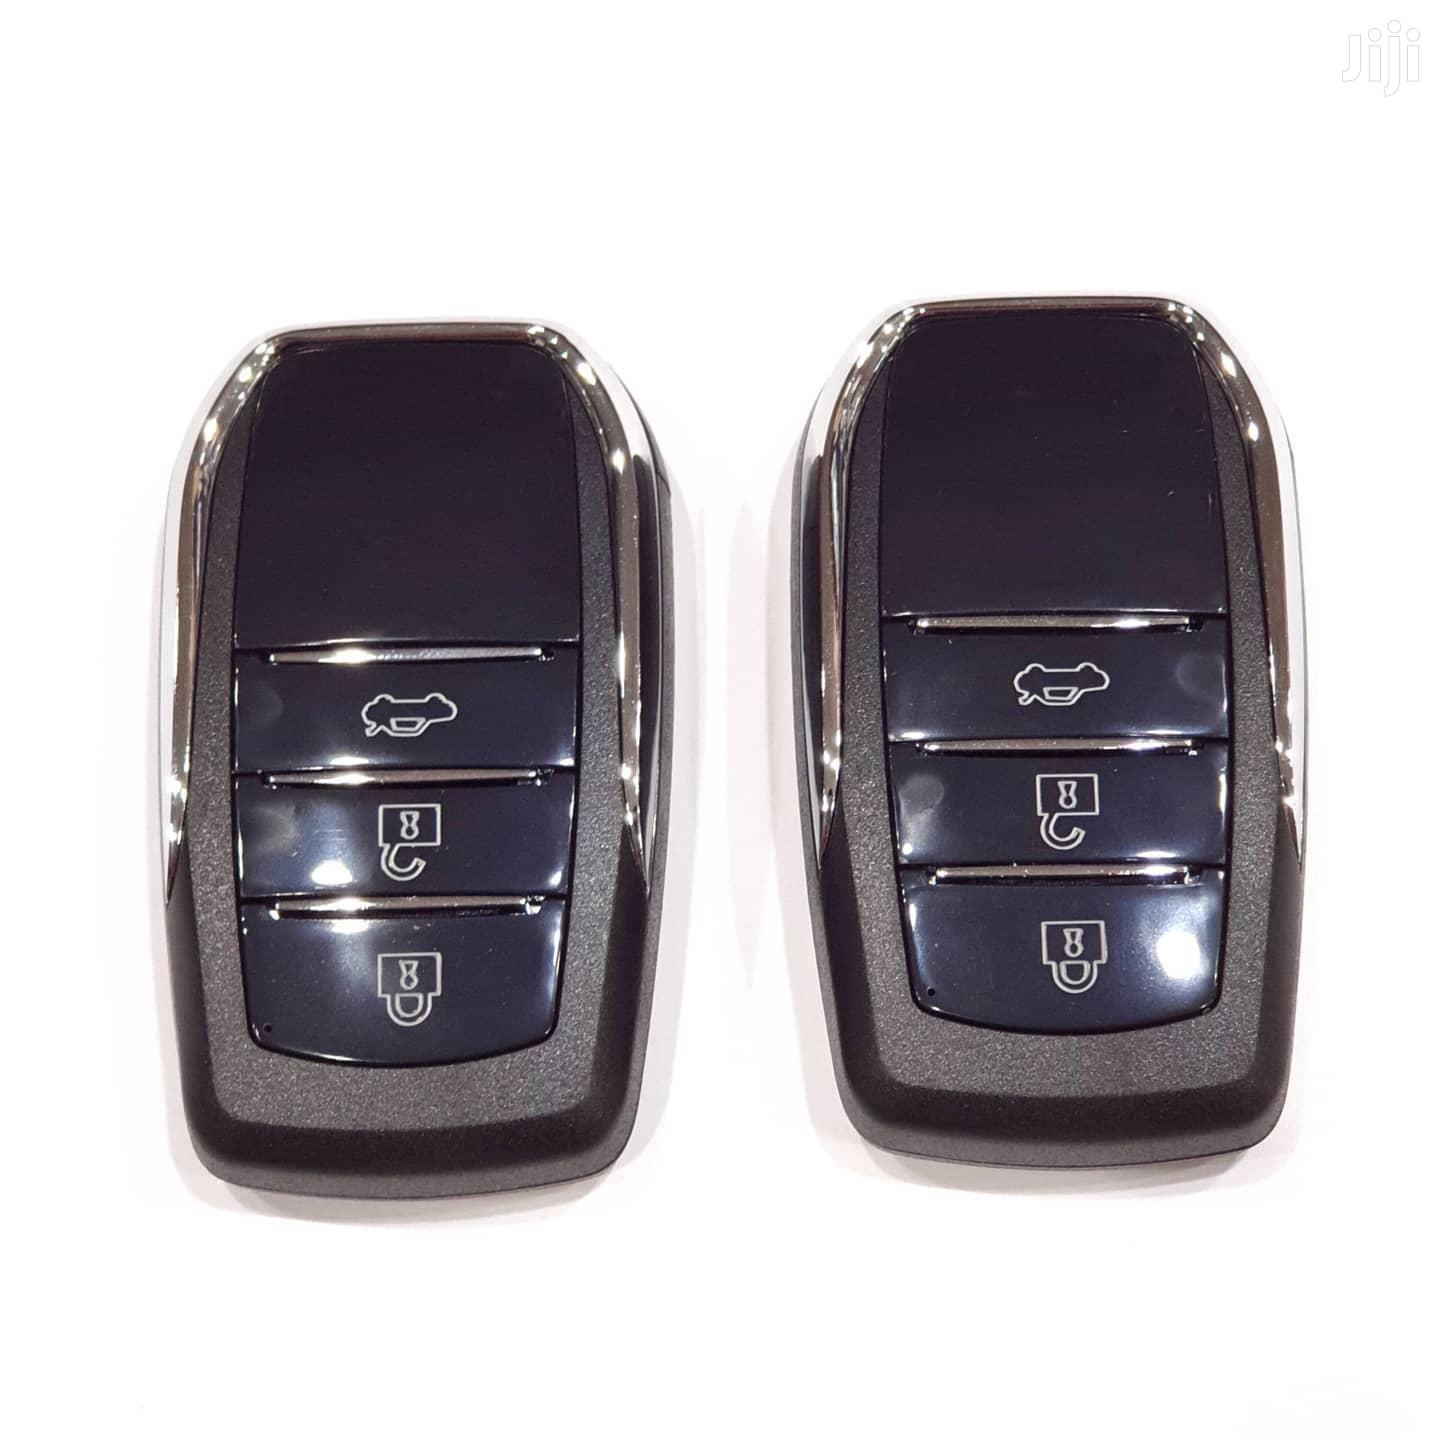 New Car Alarm Systems For Toyota